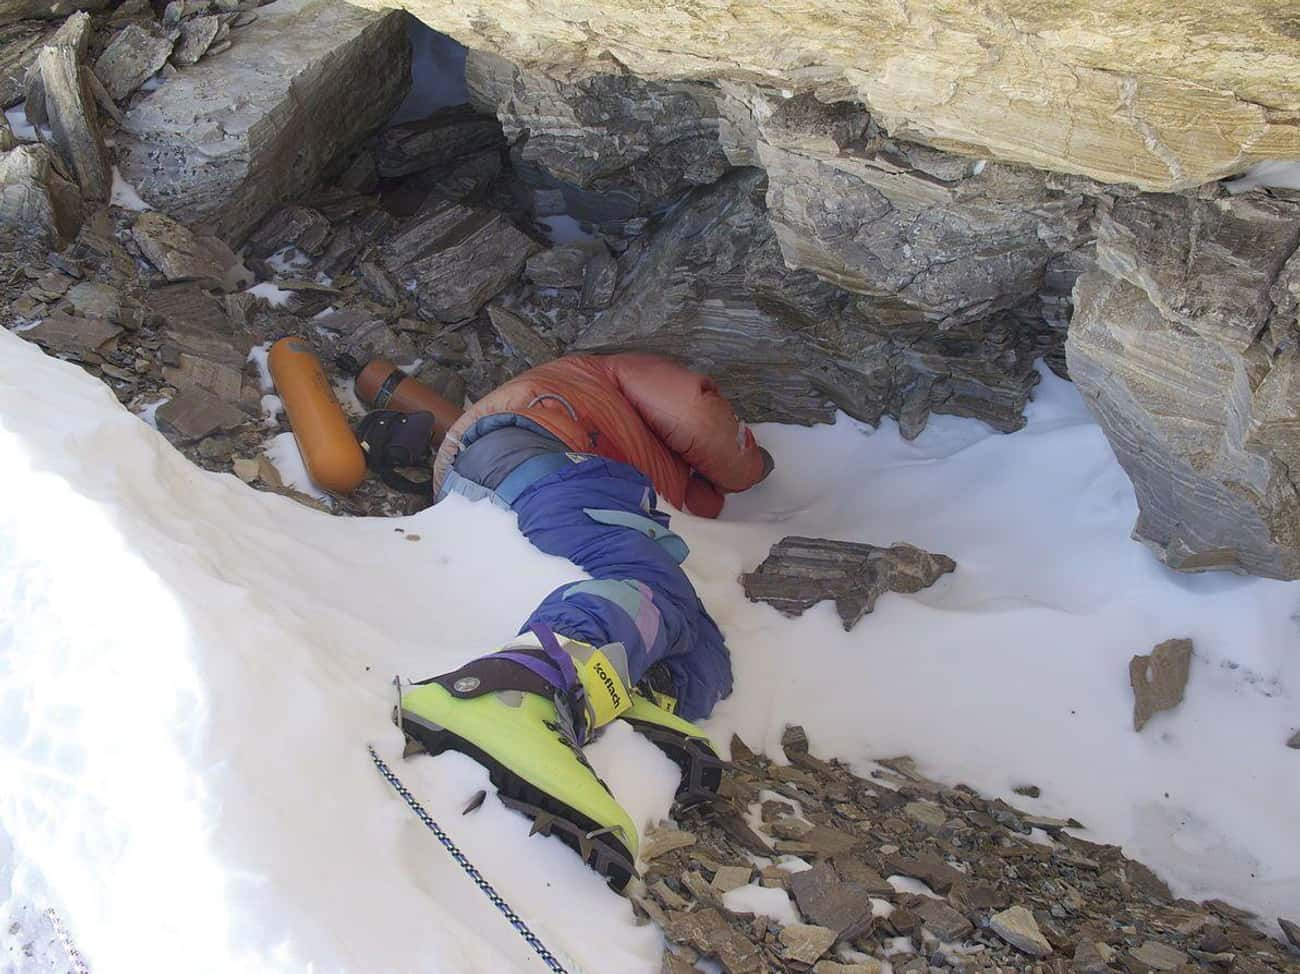 A Famous Corpse Serves As A Ma is listed (or ranked) 3 on the list For Decades, Climbers Have Encountered Ghosts And Supernatural Phenomena On Mount Everest